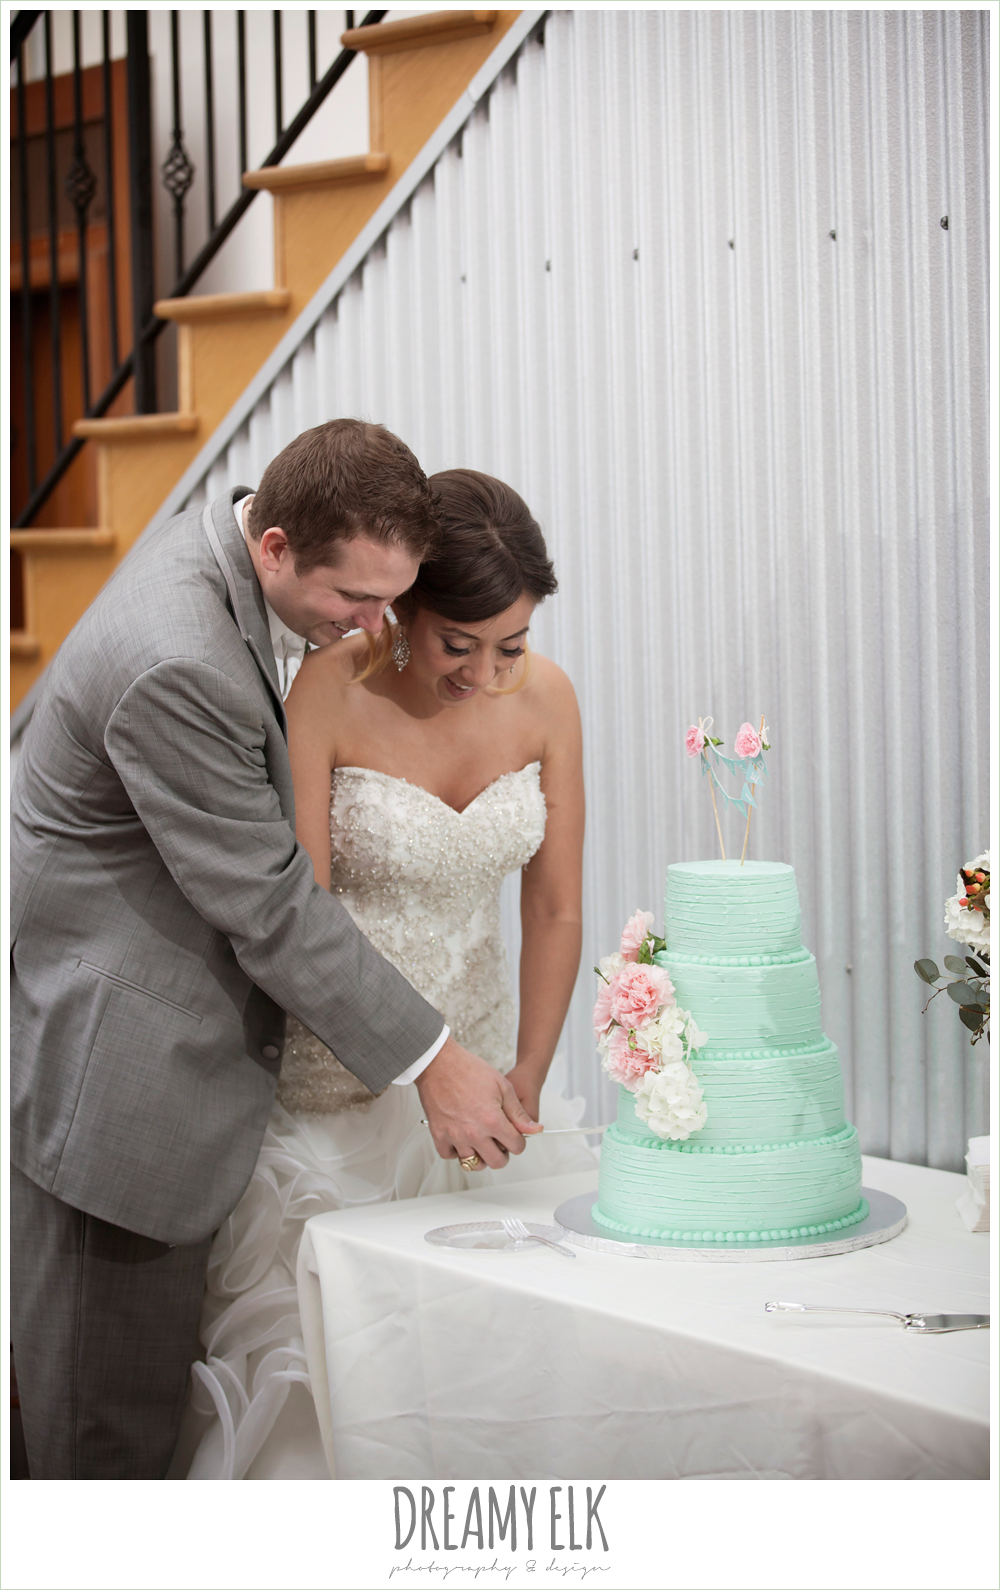 bride and groom cutting the cake, mint green wedding cake, sheila's sweet shoppe, terradorna wedding venue, austin spring wedding {dreamy elk photography and design}